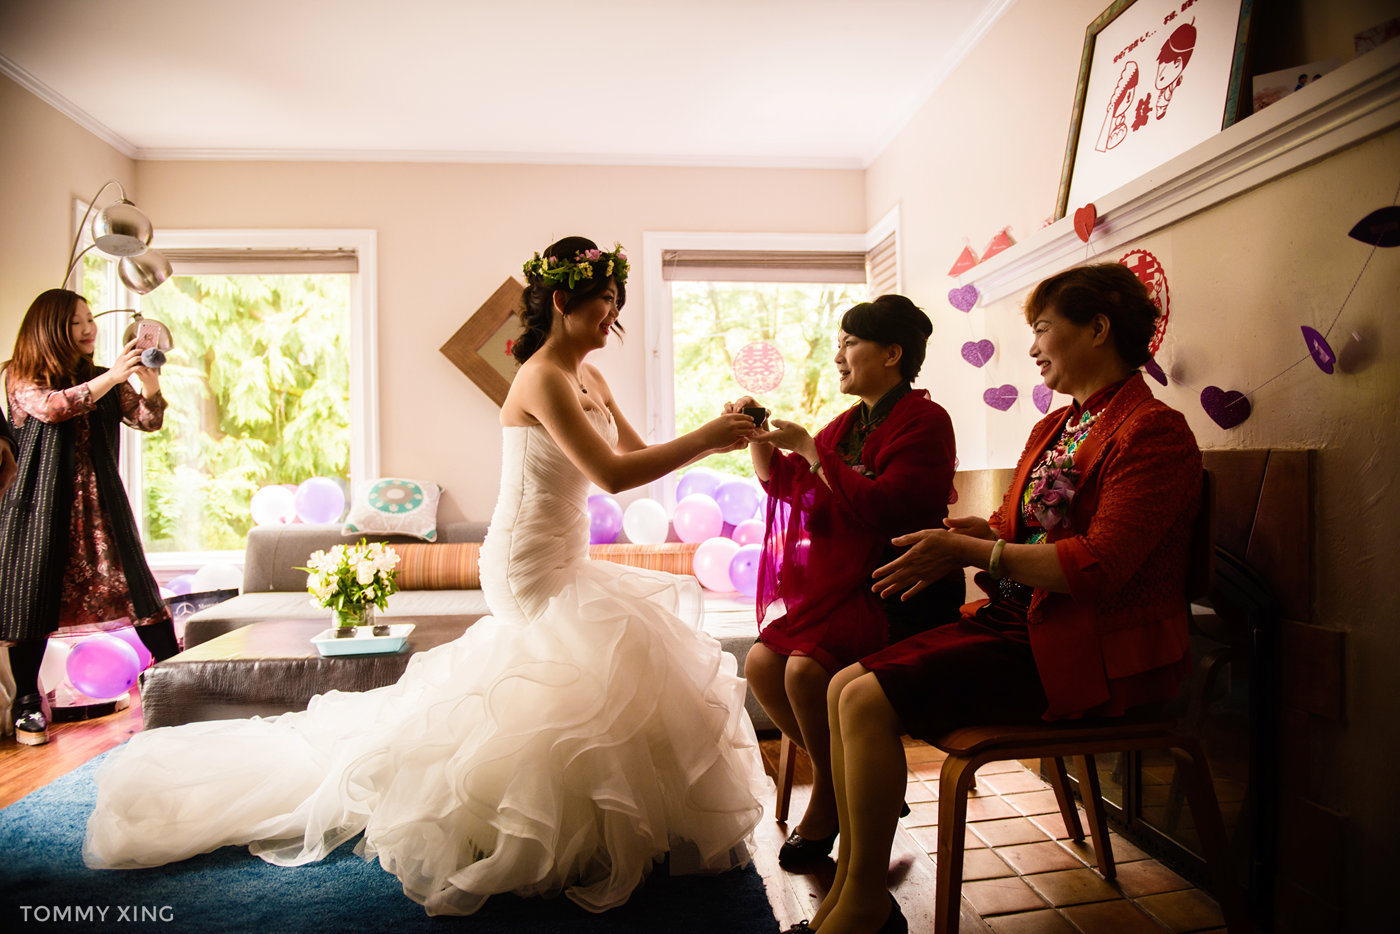 Seattle Wedding and pre wedding Los Angeles Tommy Xing Photography 西雅图洛杉矶旧金山婚礼婚纱照摄影师 025.jpg